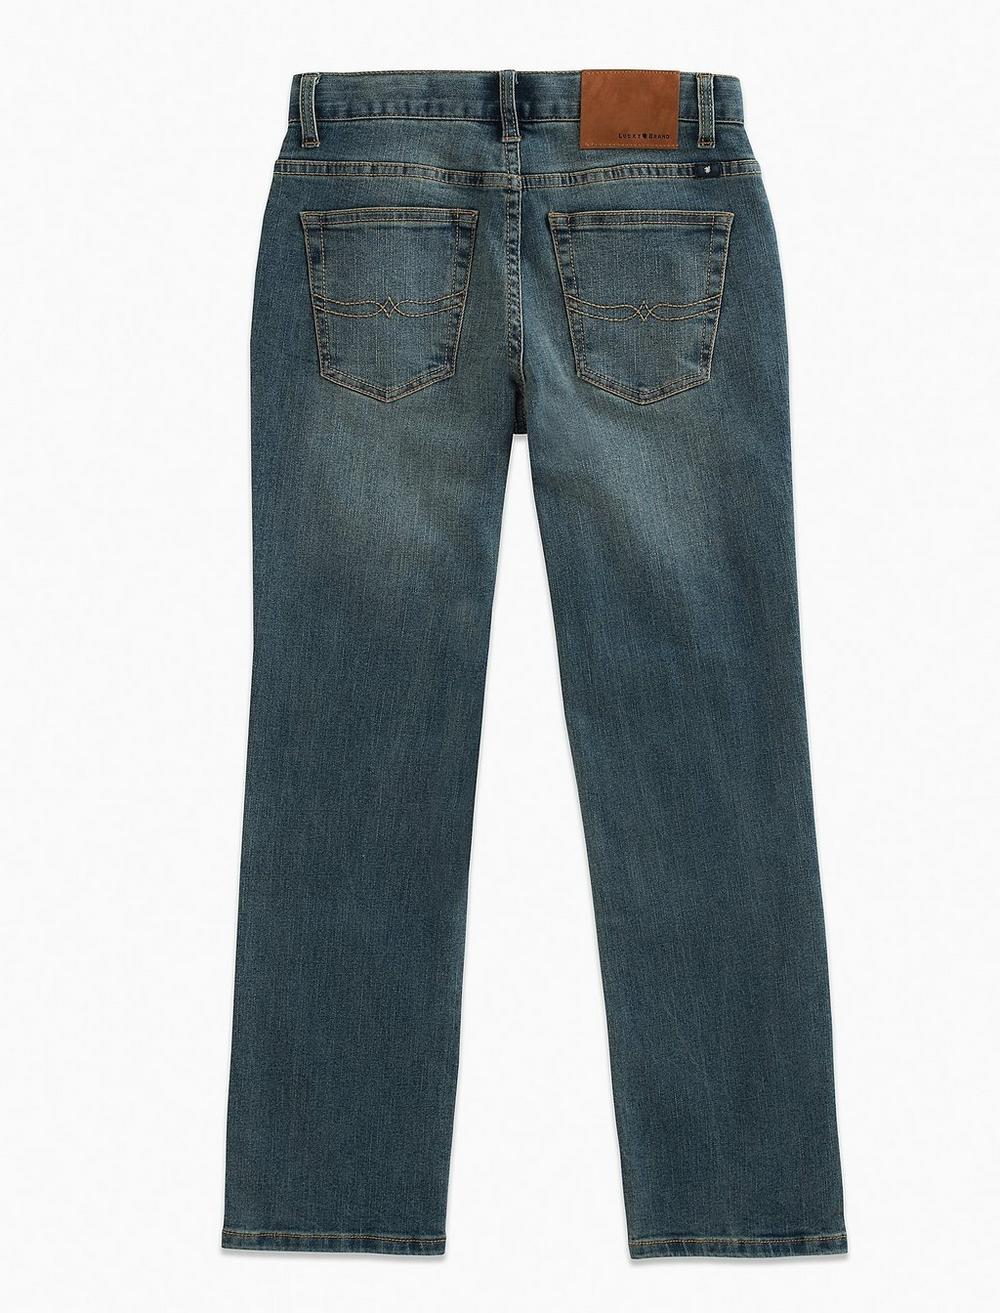 BOYS CLASSIC STRAIGHT JEANS, image 2